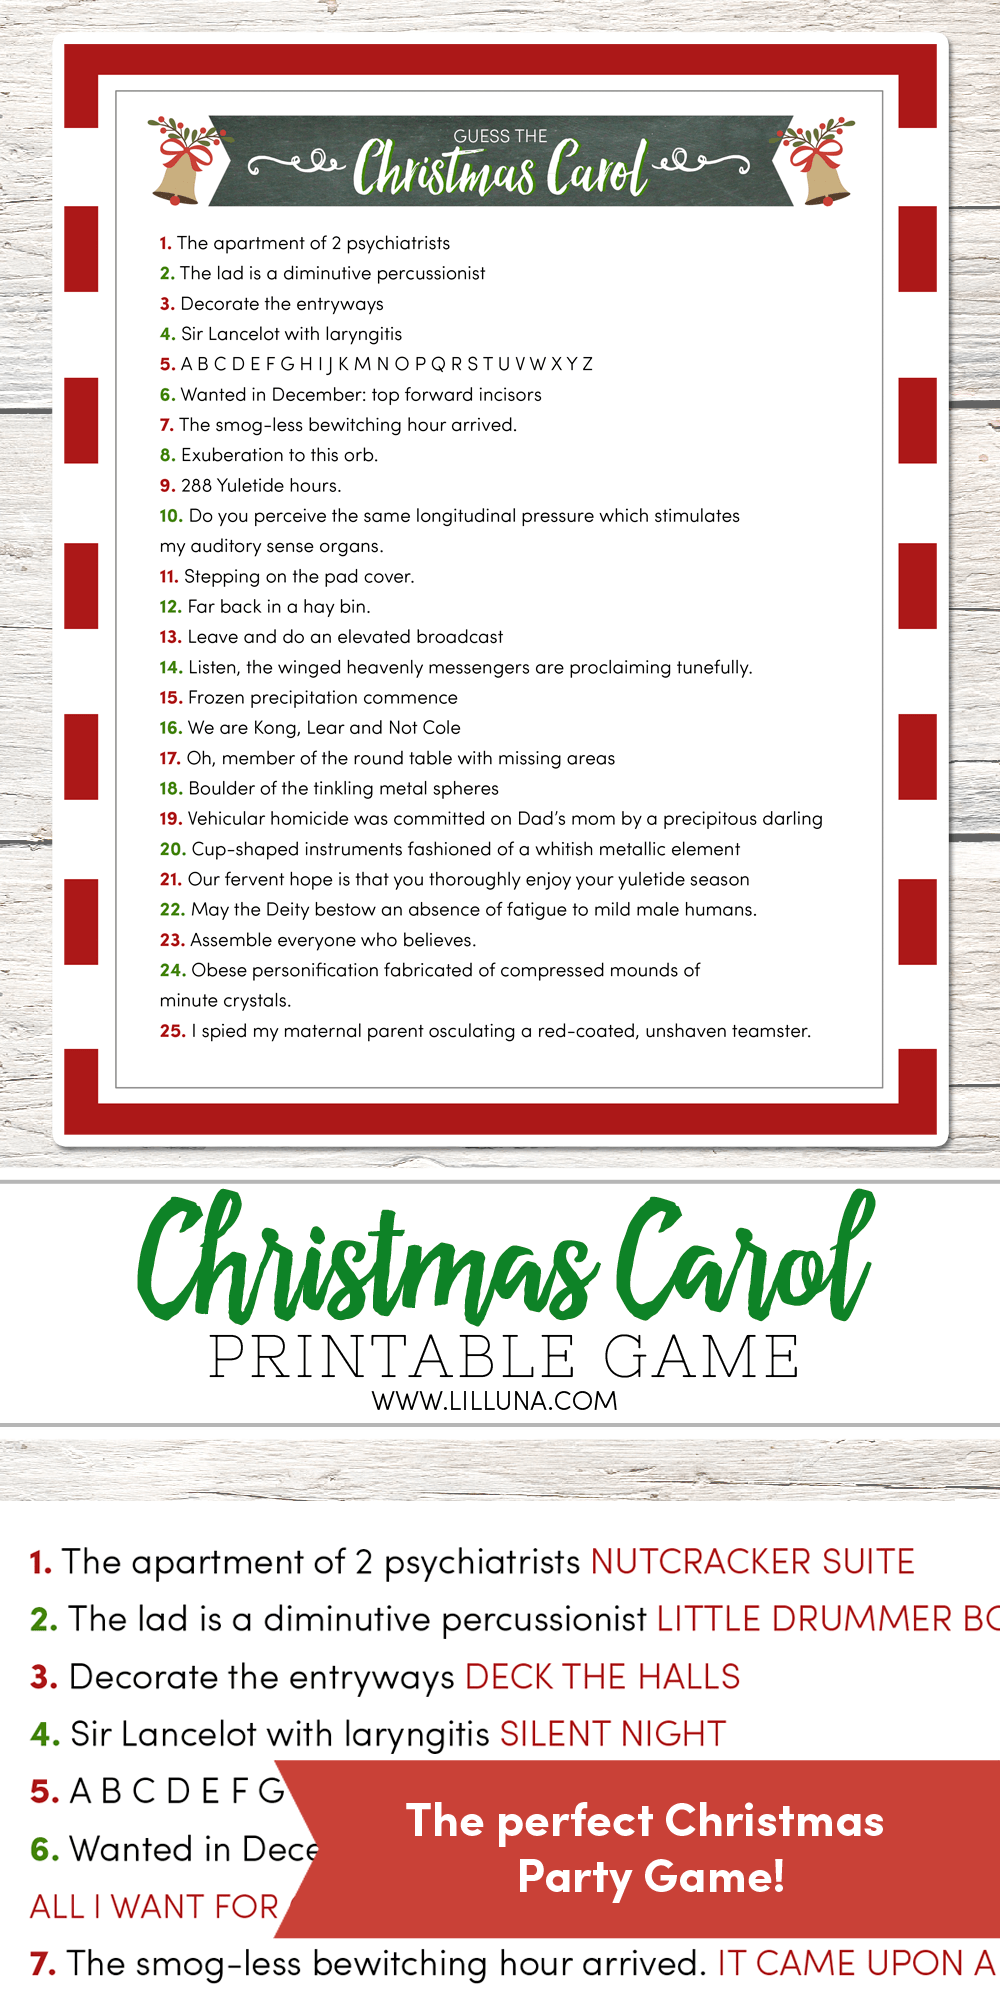 graphic about Christmas Song Scramble Free Printable known as Bet the Xmas Carol Recreation - Lil Luna